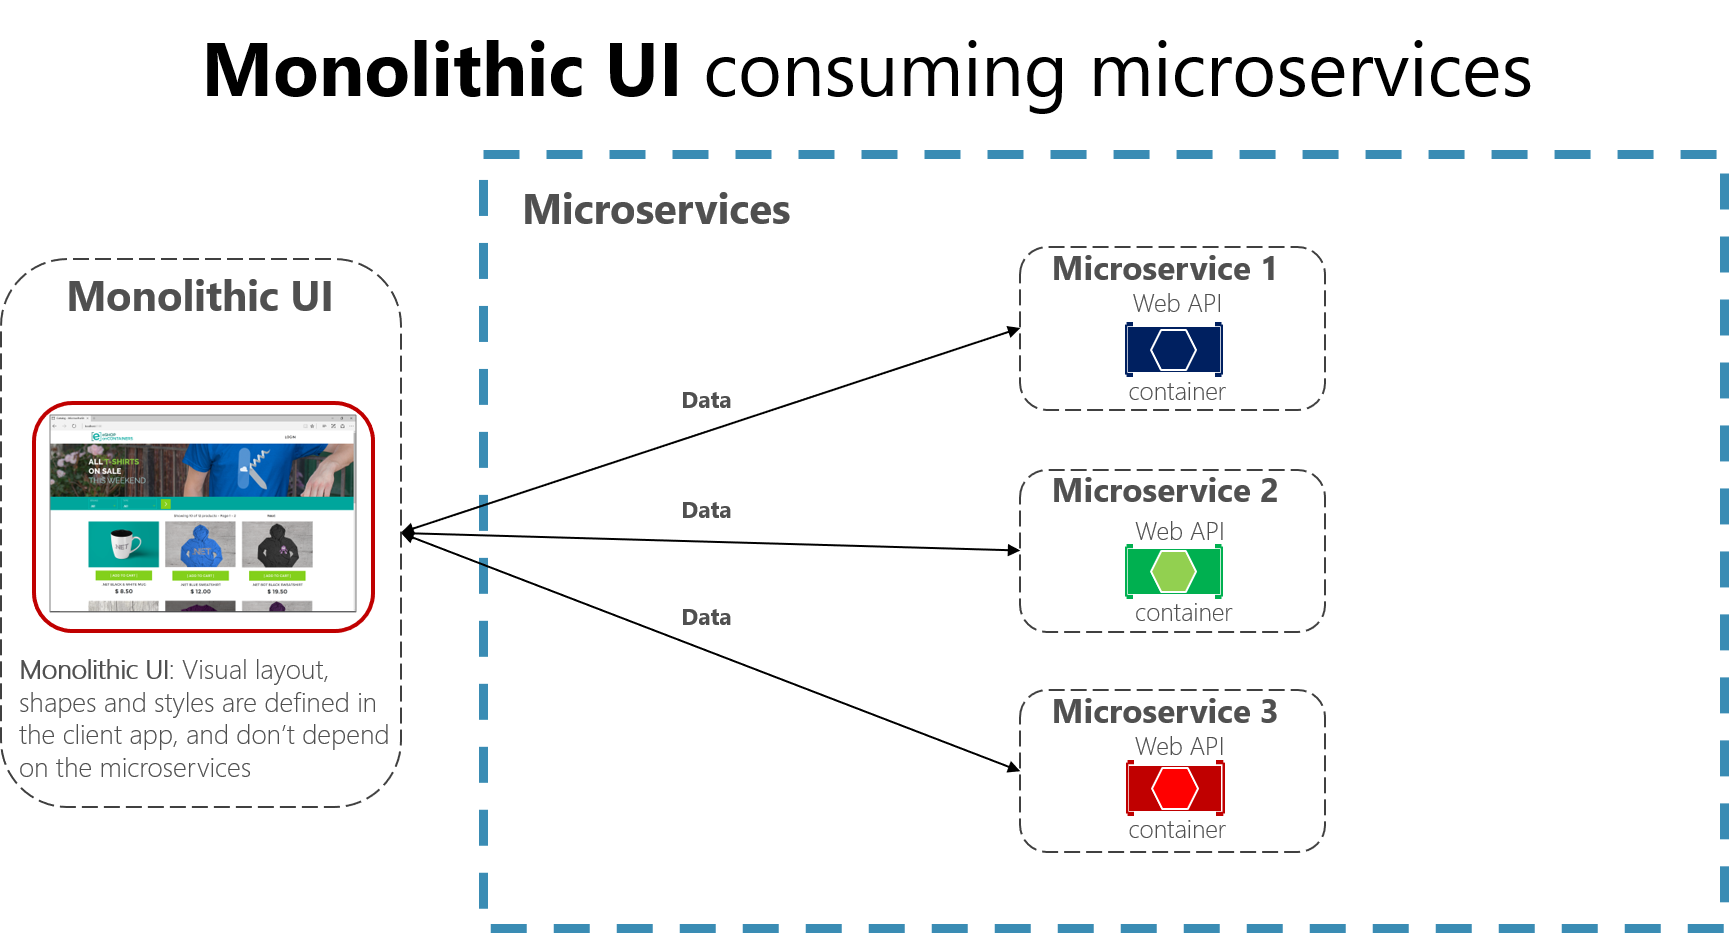 Creating composite UI based on microservices | Microsoft Docs